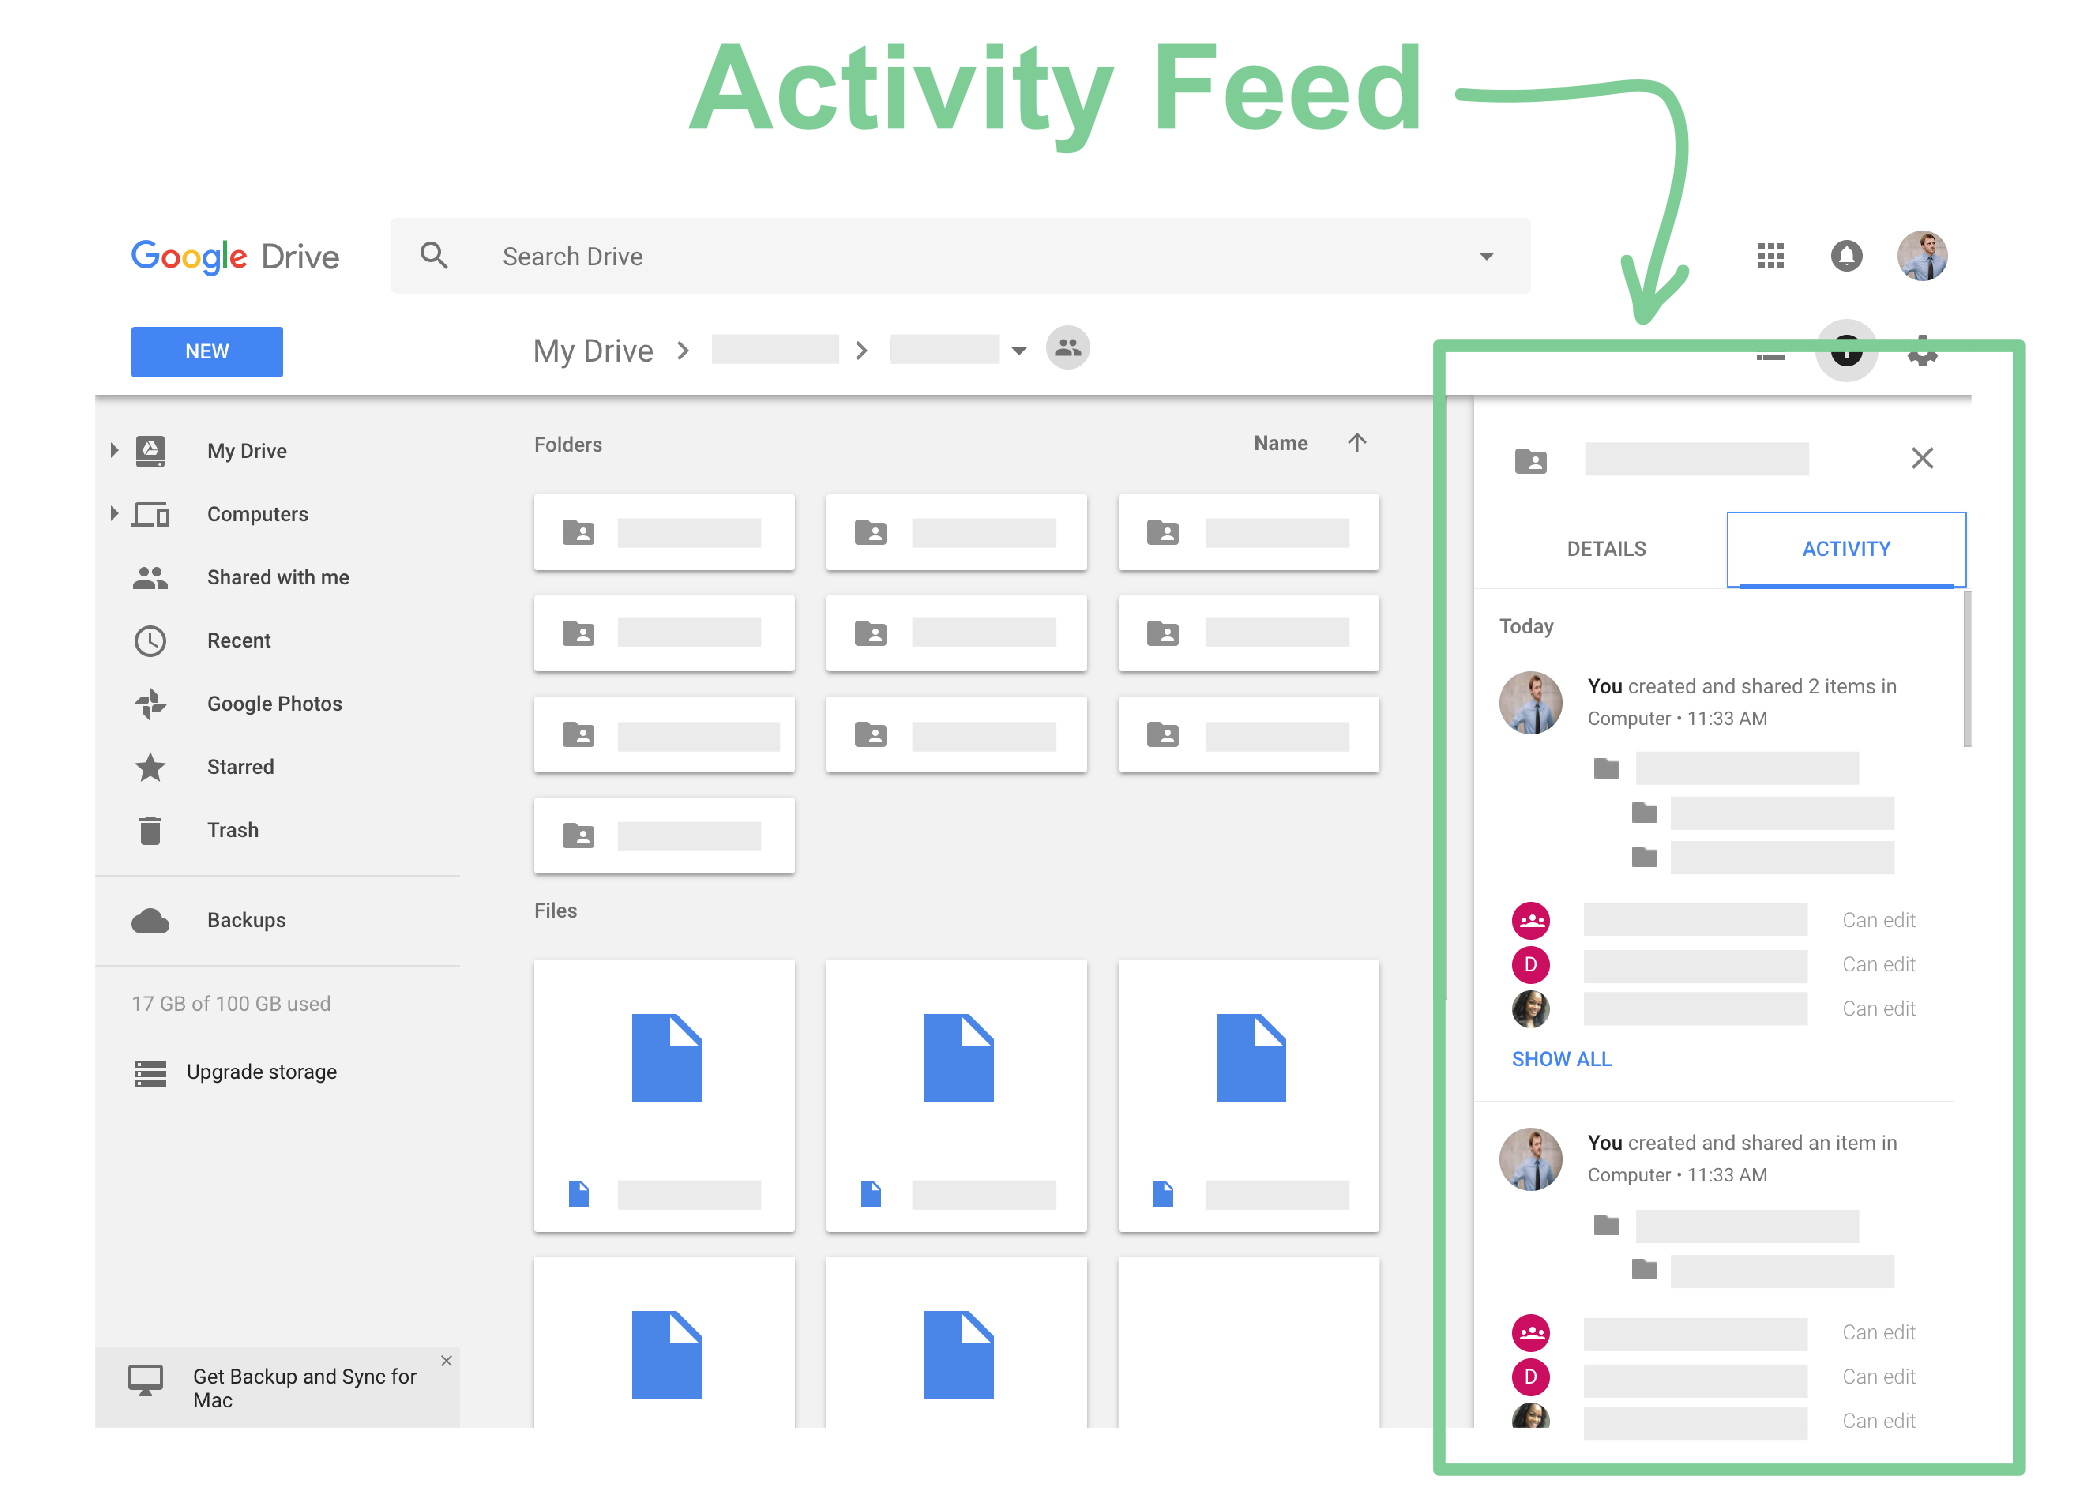 (Fig. 1) Position of the Activity Feed in Google Drive